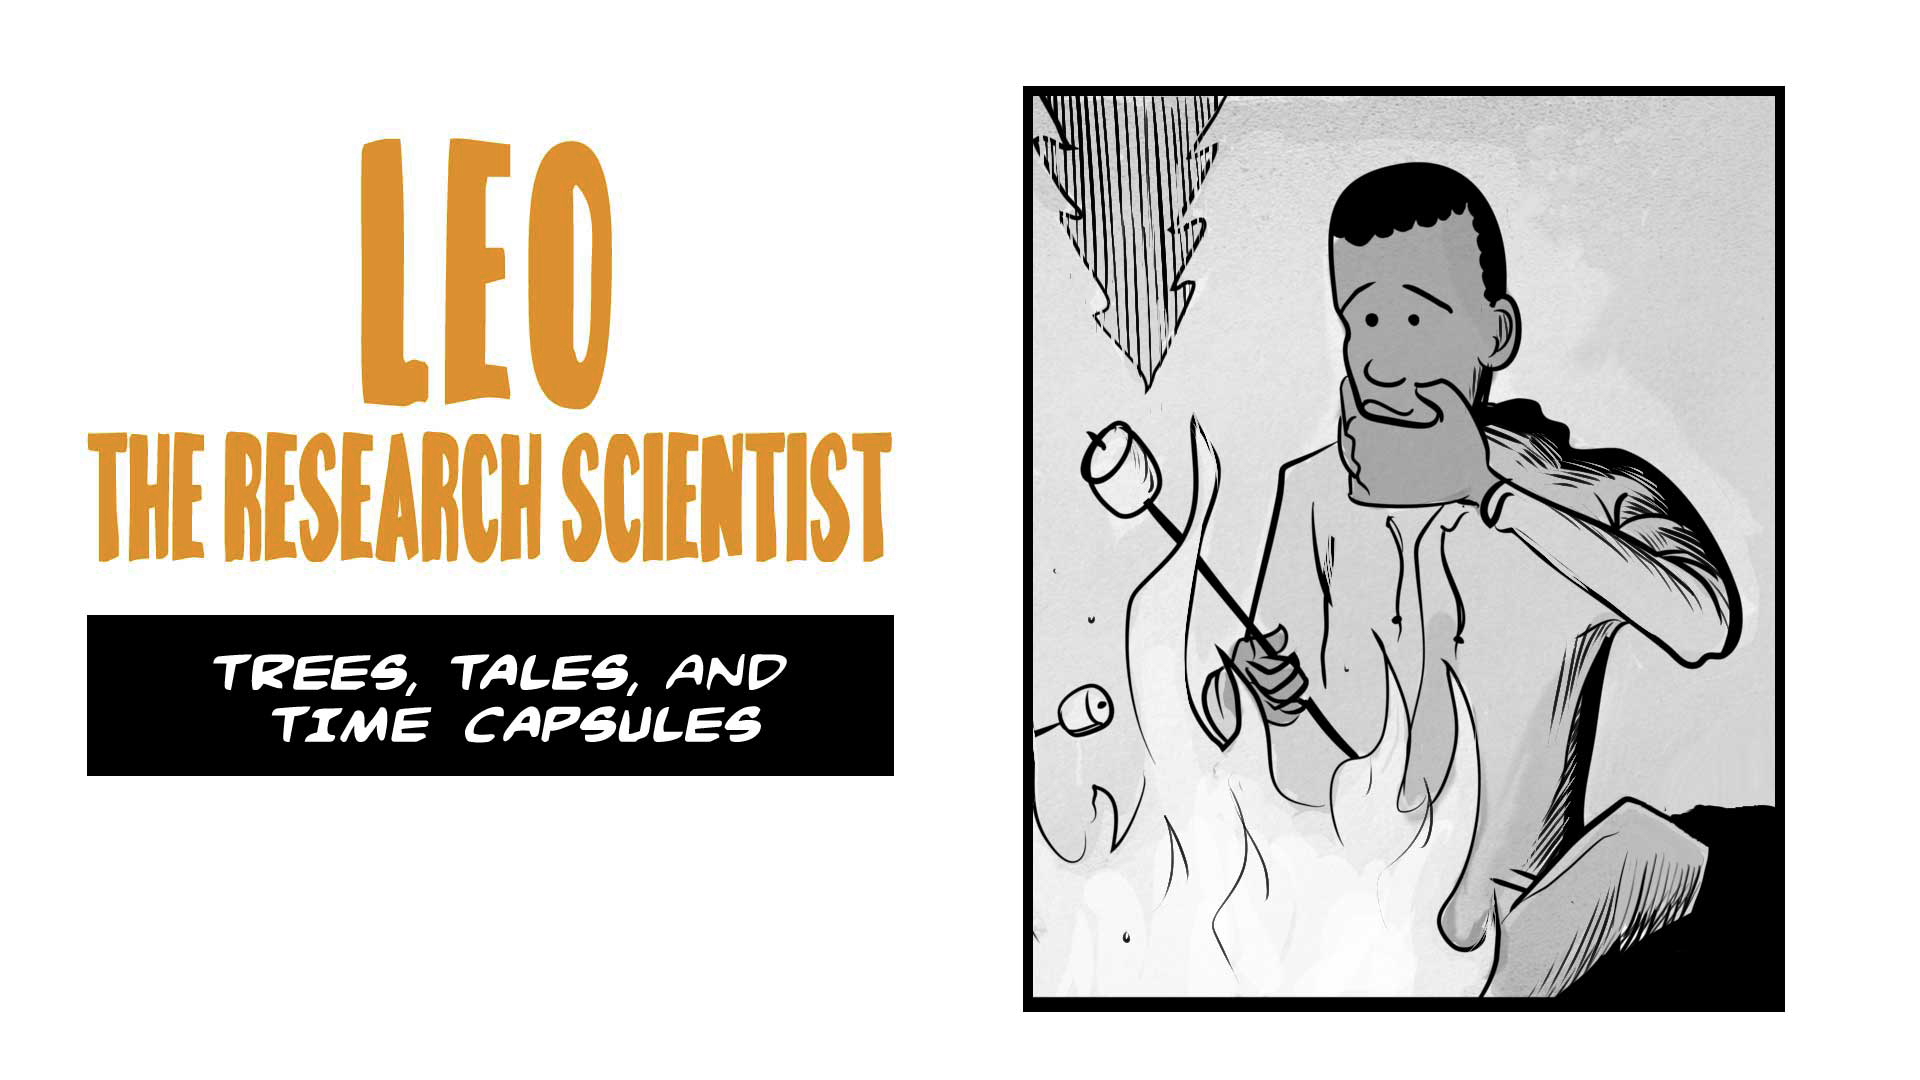 Leo, the Research Scientist. Trees, tales, and time capsules